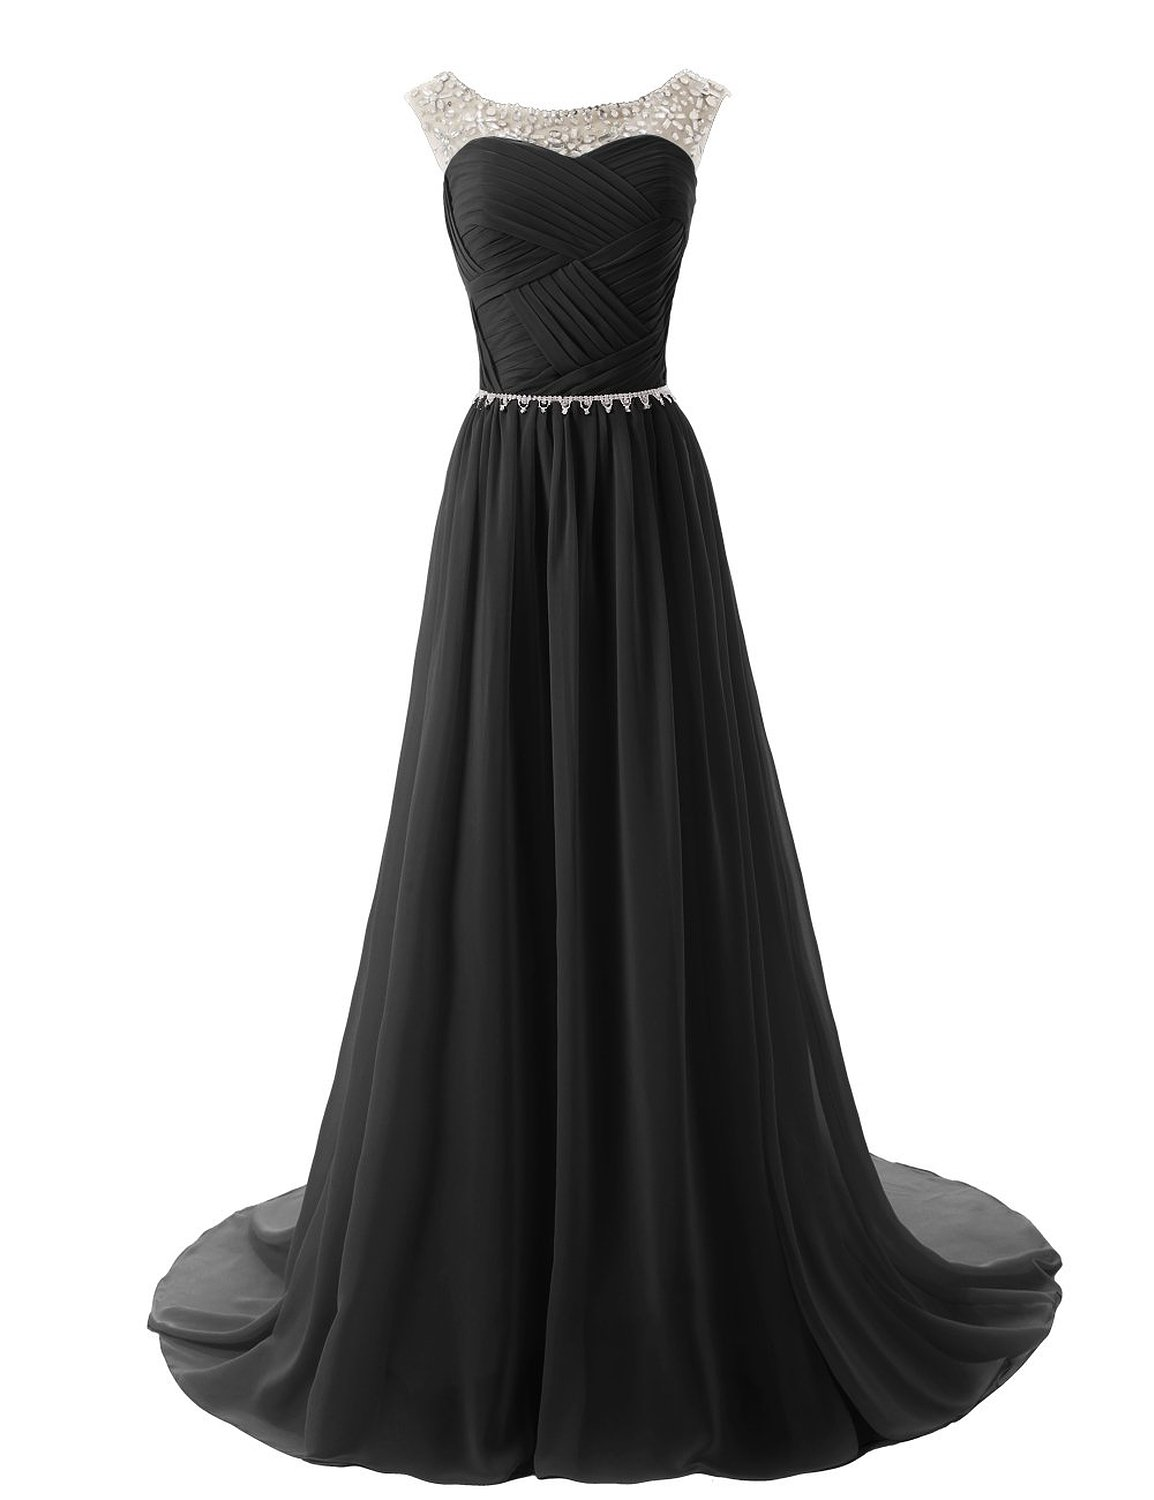 Dressystar Beaded Straps Bridesmaid Prom Dresses with Sparkling Embellished Waist at Amazon Women's Clothing store